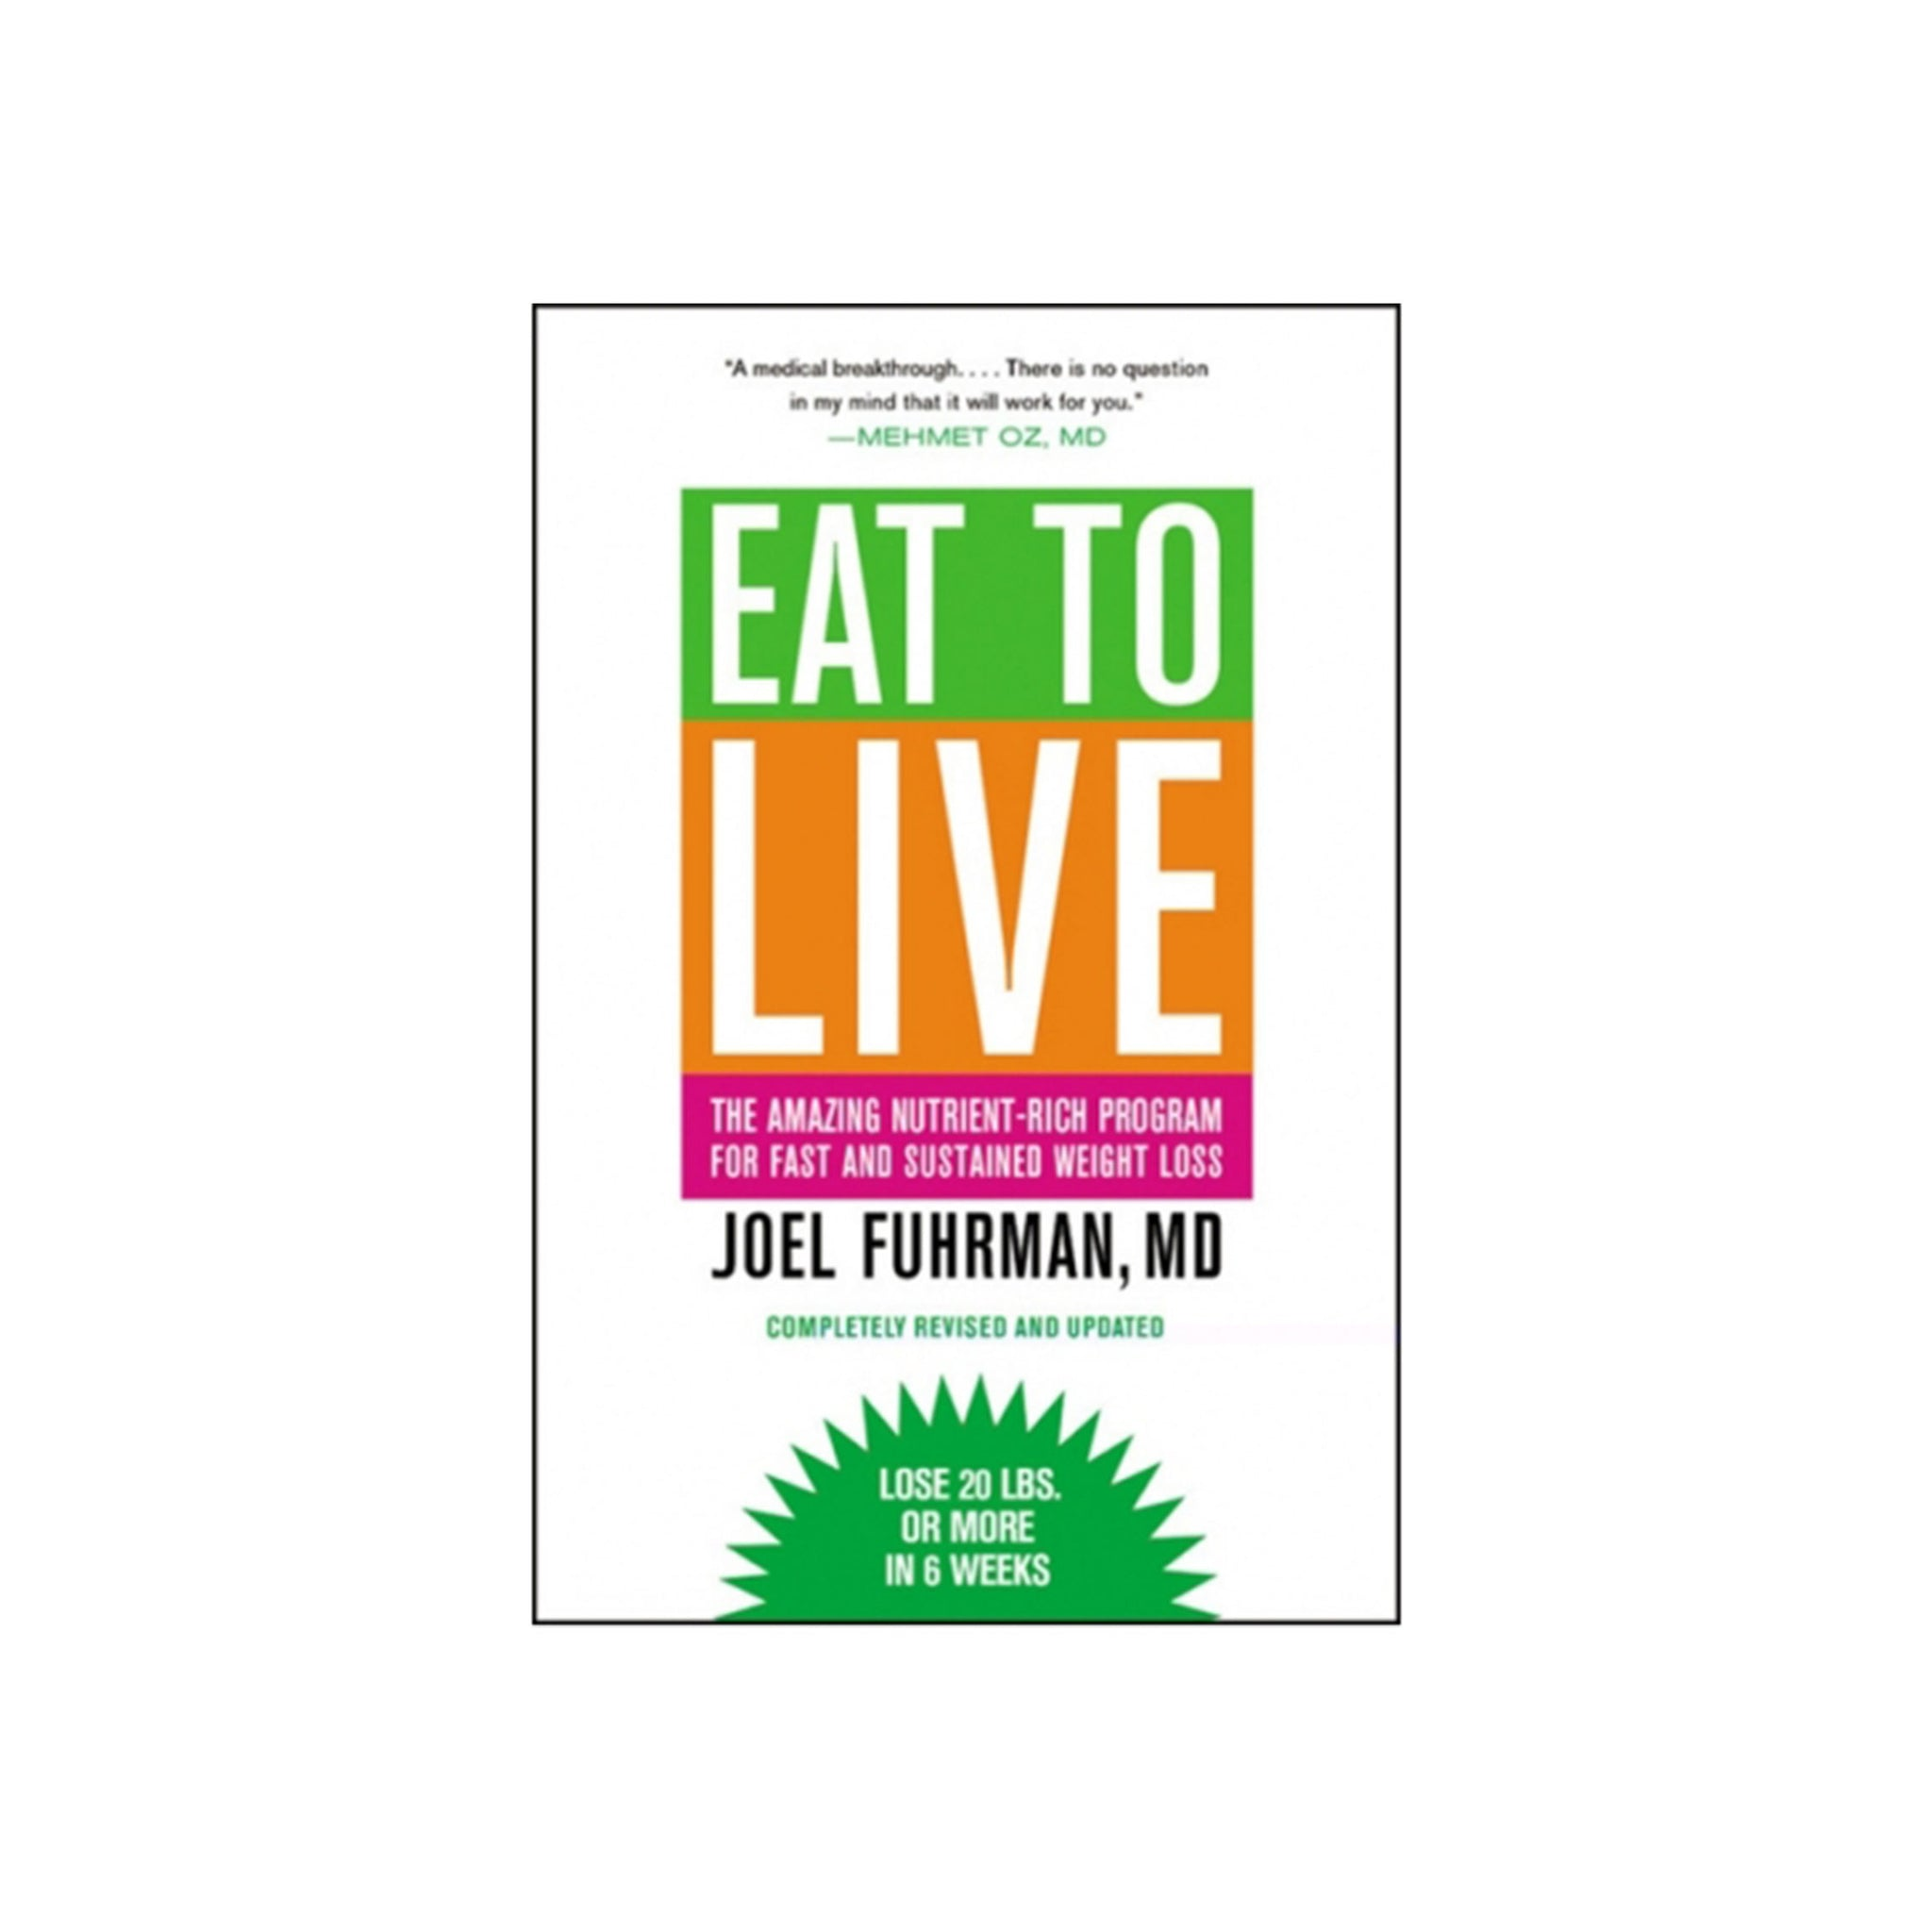 Foods Alive - Eat To Live Book by Dr. Joel Fuhrman